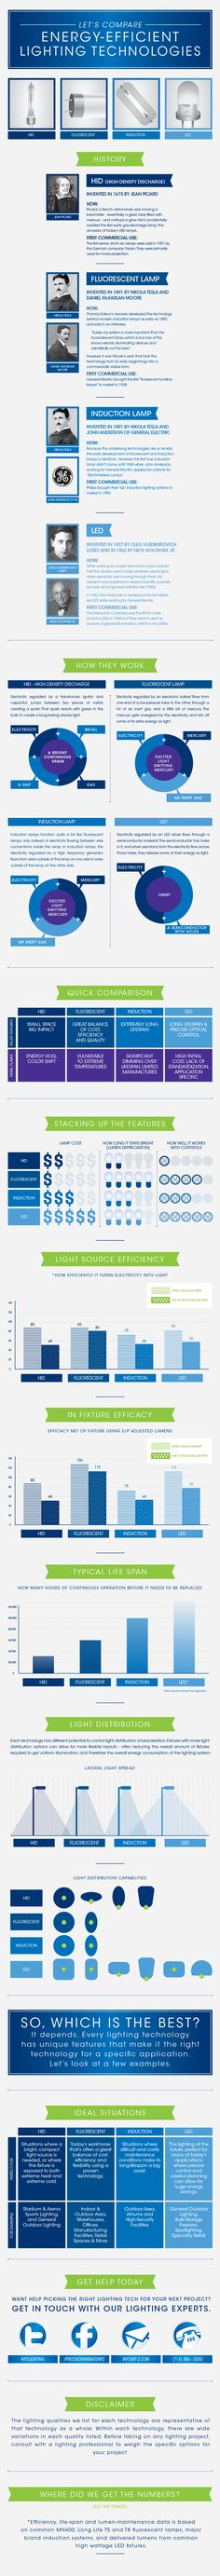 Comparing Energy Efficient Lighting Technologies [Infographic]